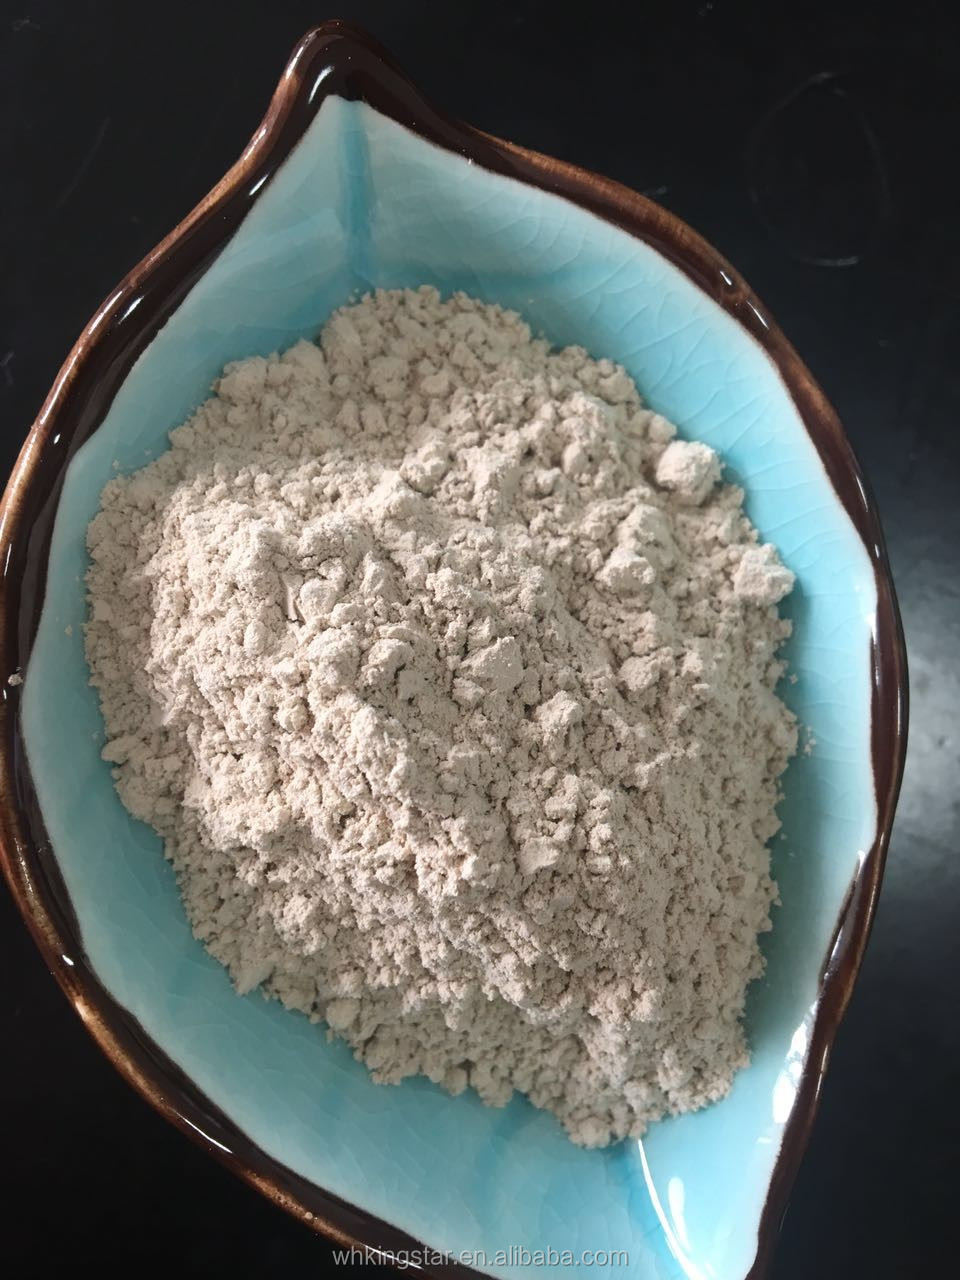 Supreme Biological Buy High Potash Fertilizer Guangxi White Clay Humate